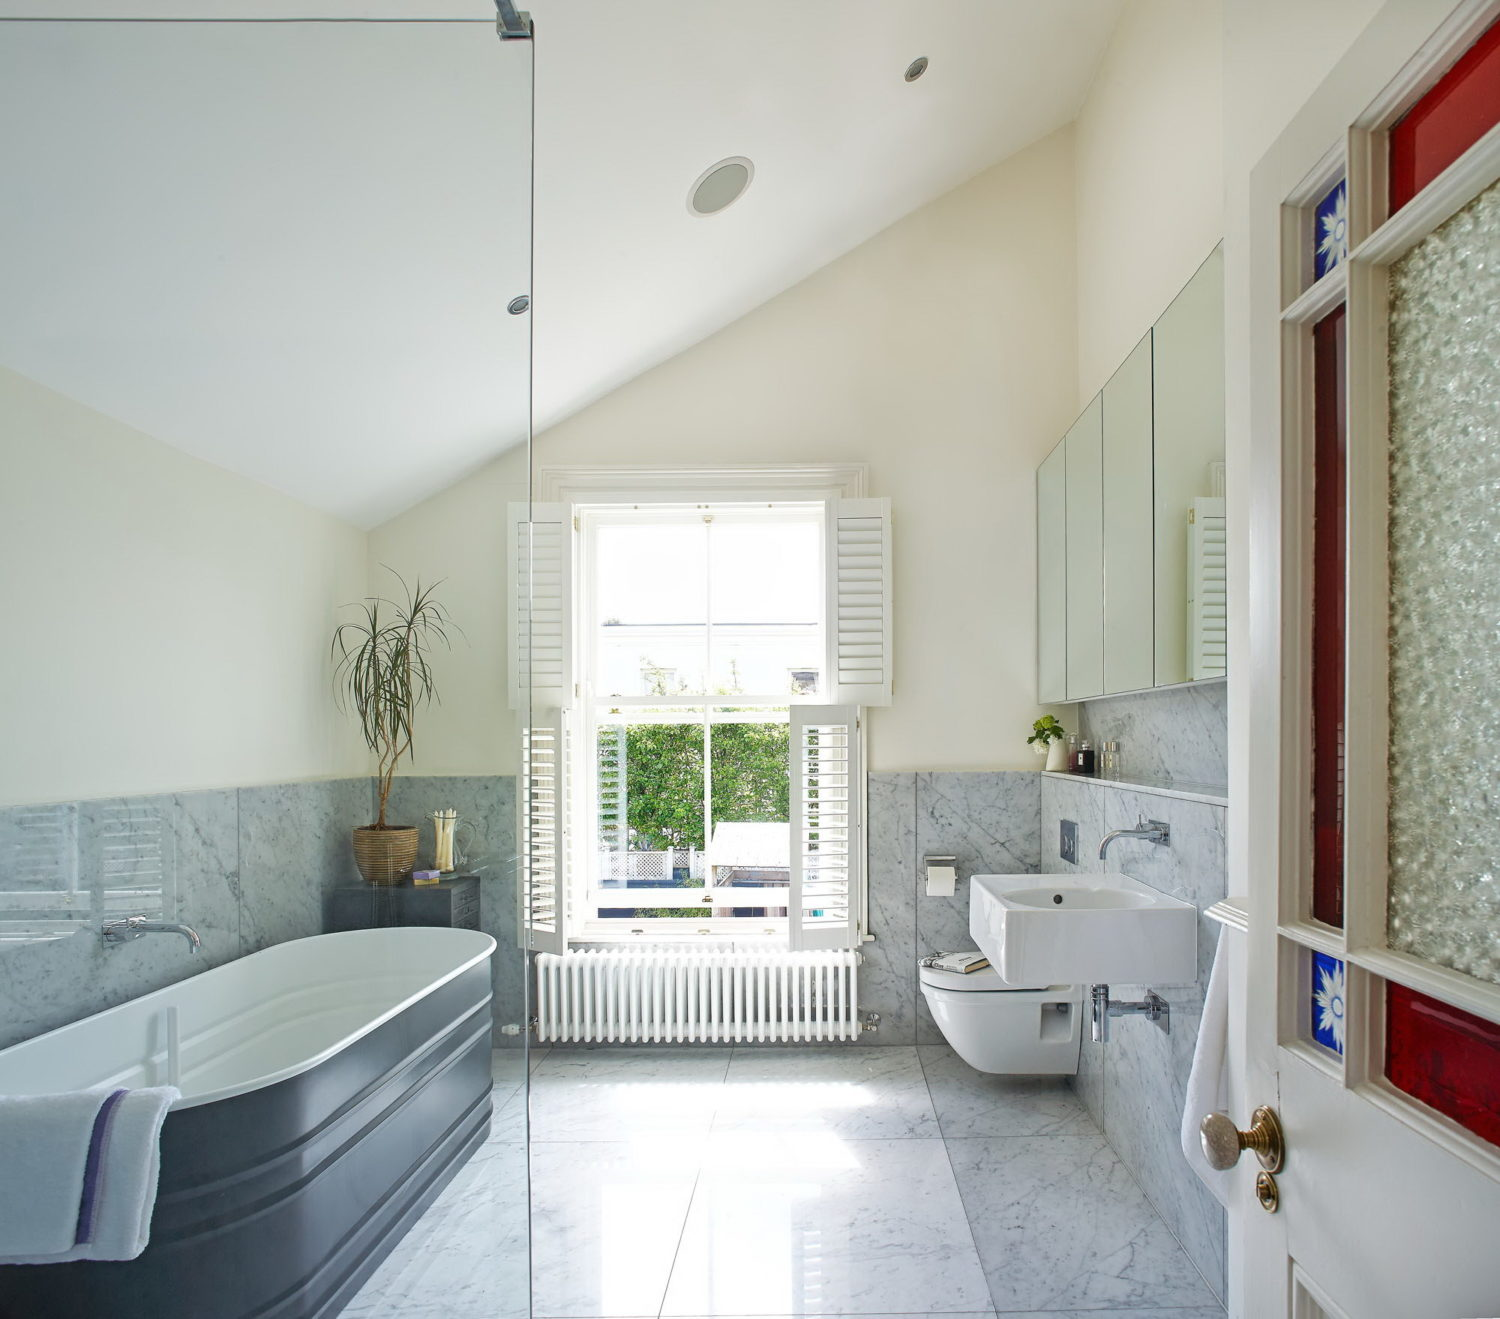 Rathgar Redbrick   Victorian House Renovation by Ambient Architecture